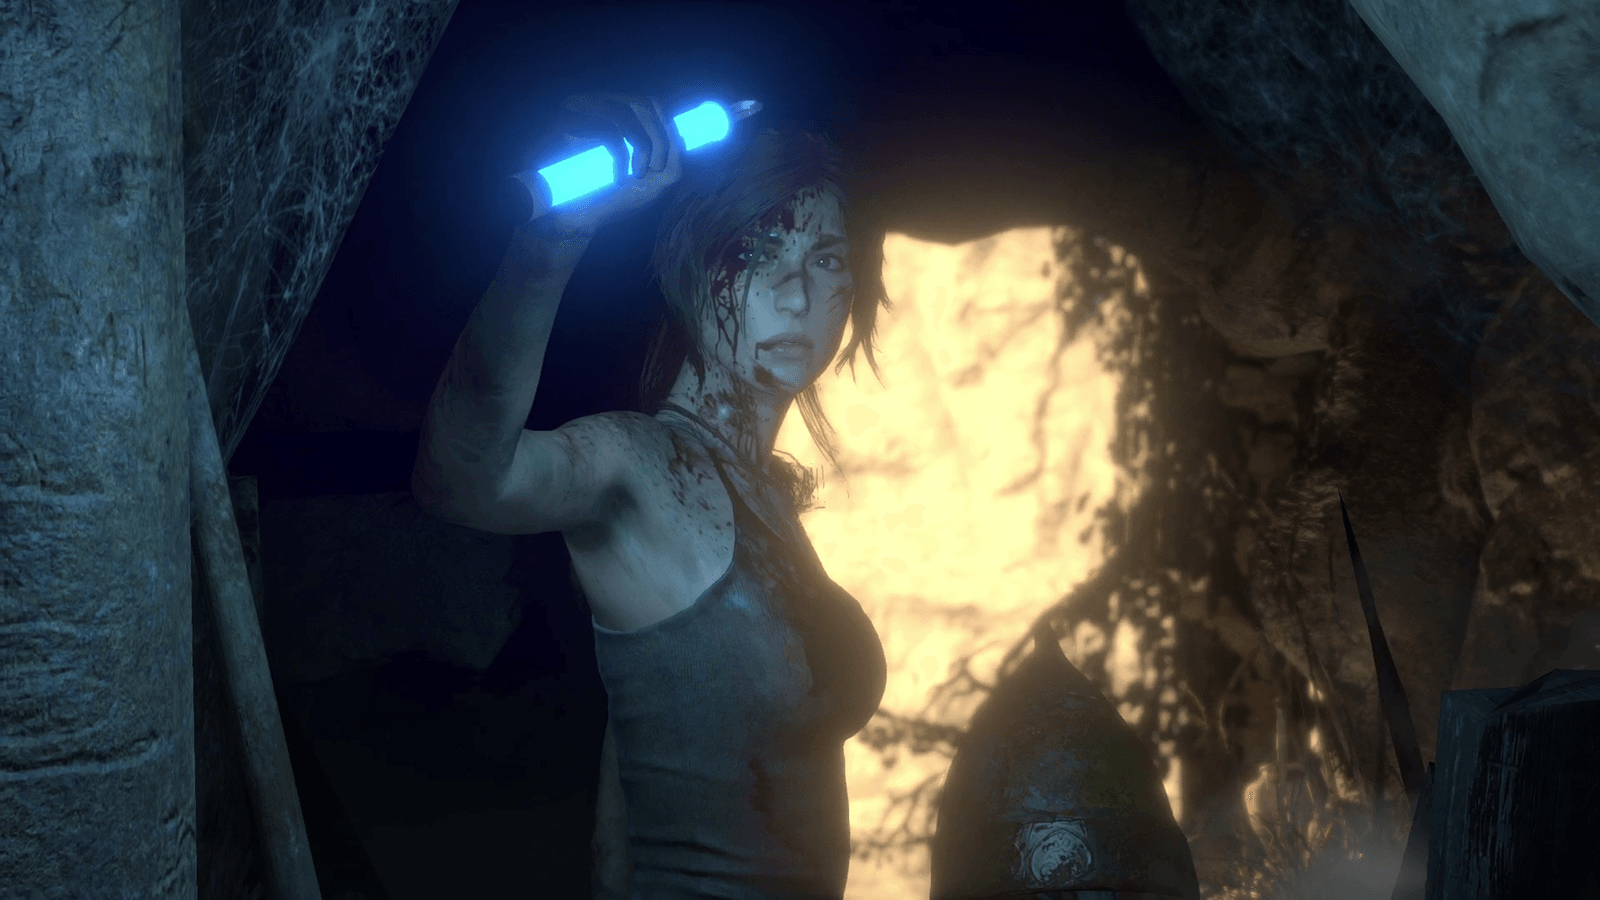 http://techius.in/v0lfj/tomb-raider-3-ps4.html